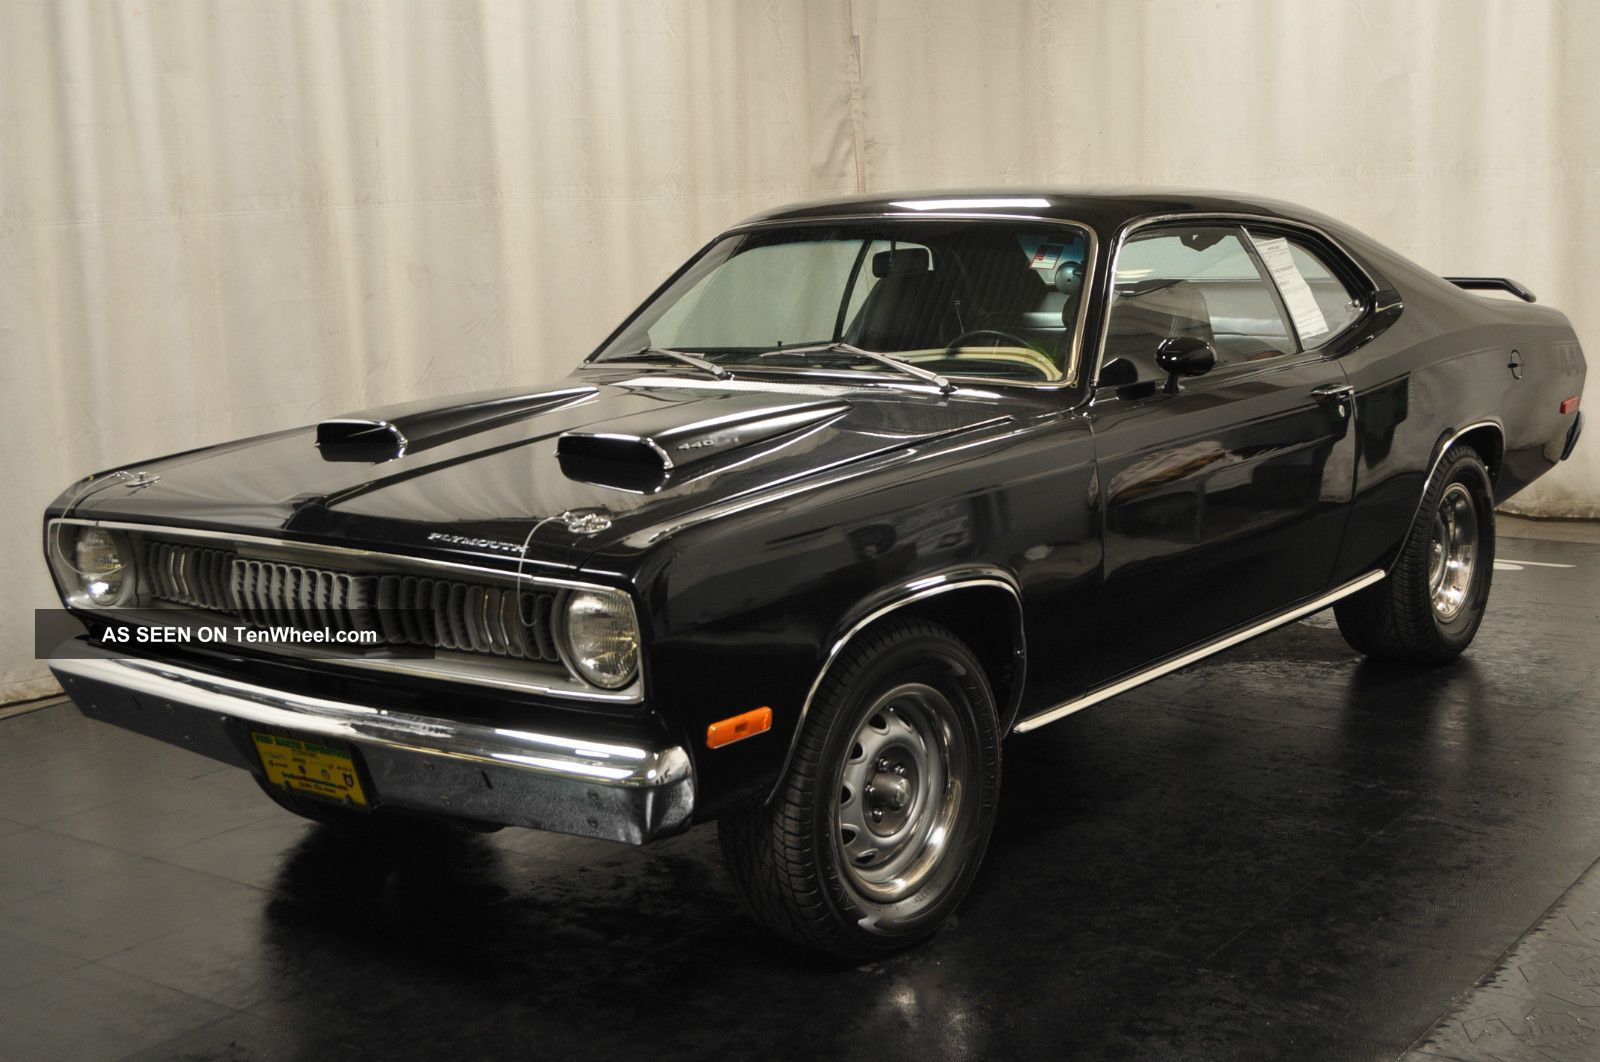 1972 Plymouth Duster With 440 Swap Duster photo